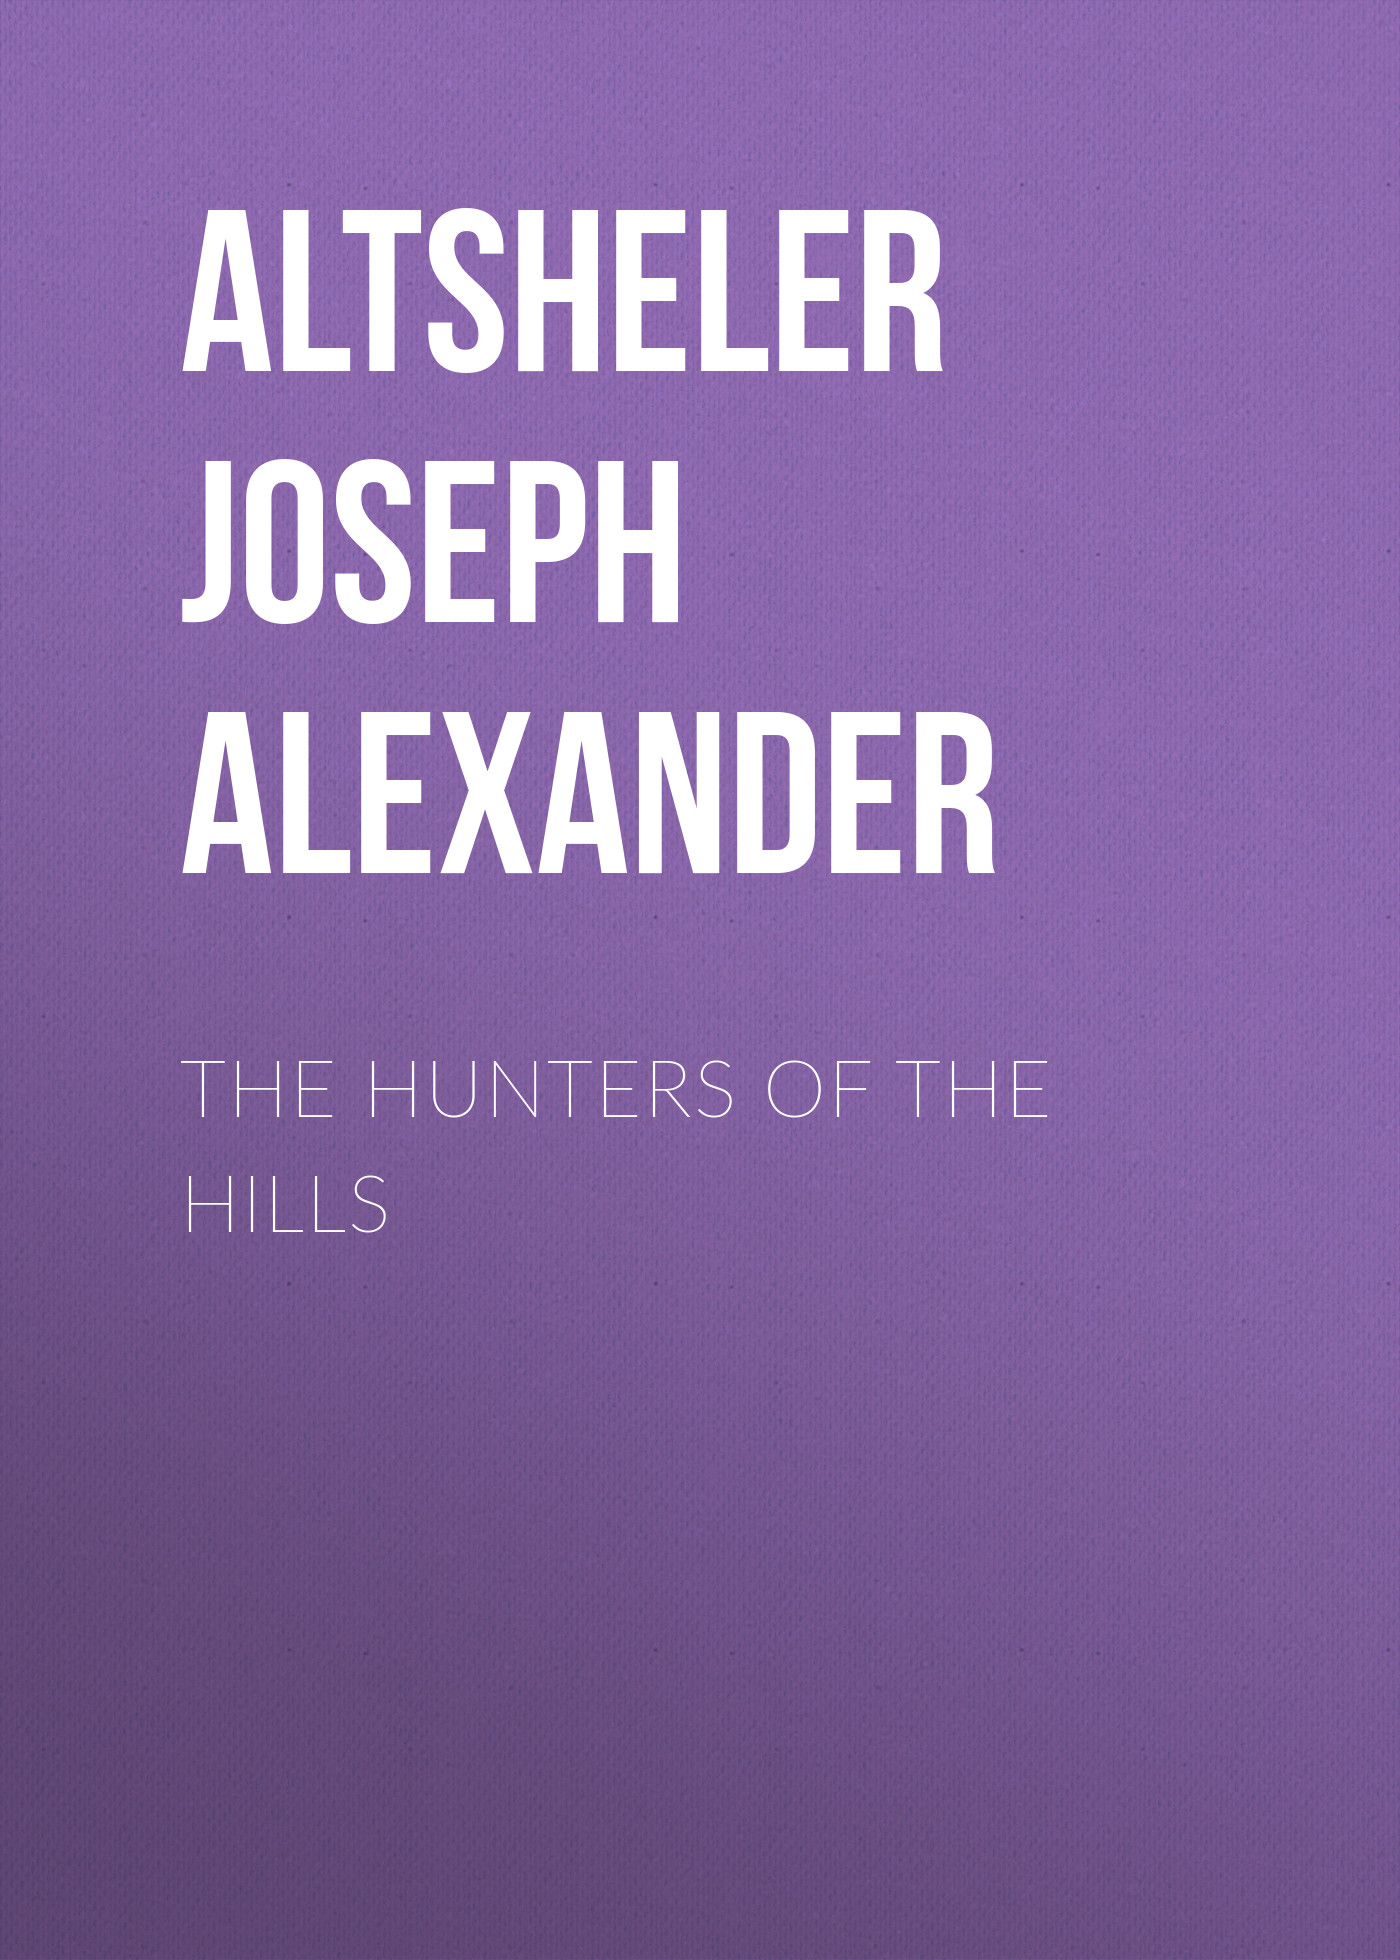 Altsheler Joseph Alexander The Hunters of the Hills the rider of the ruby hills